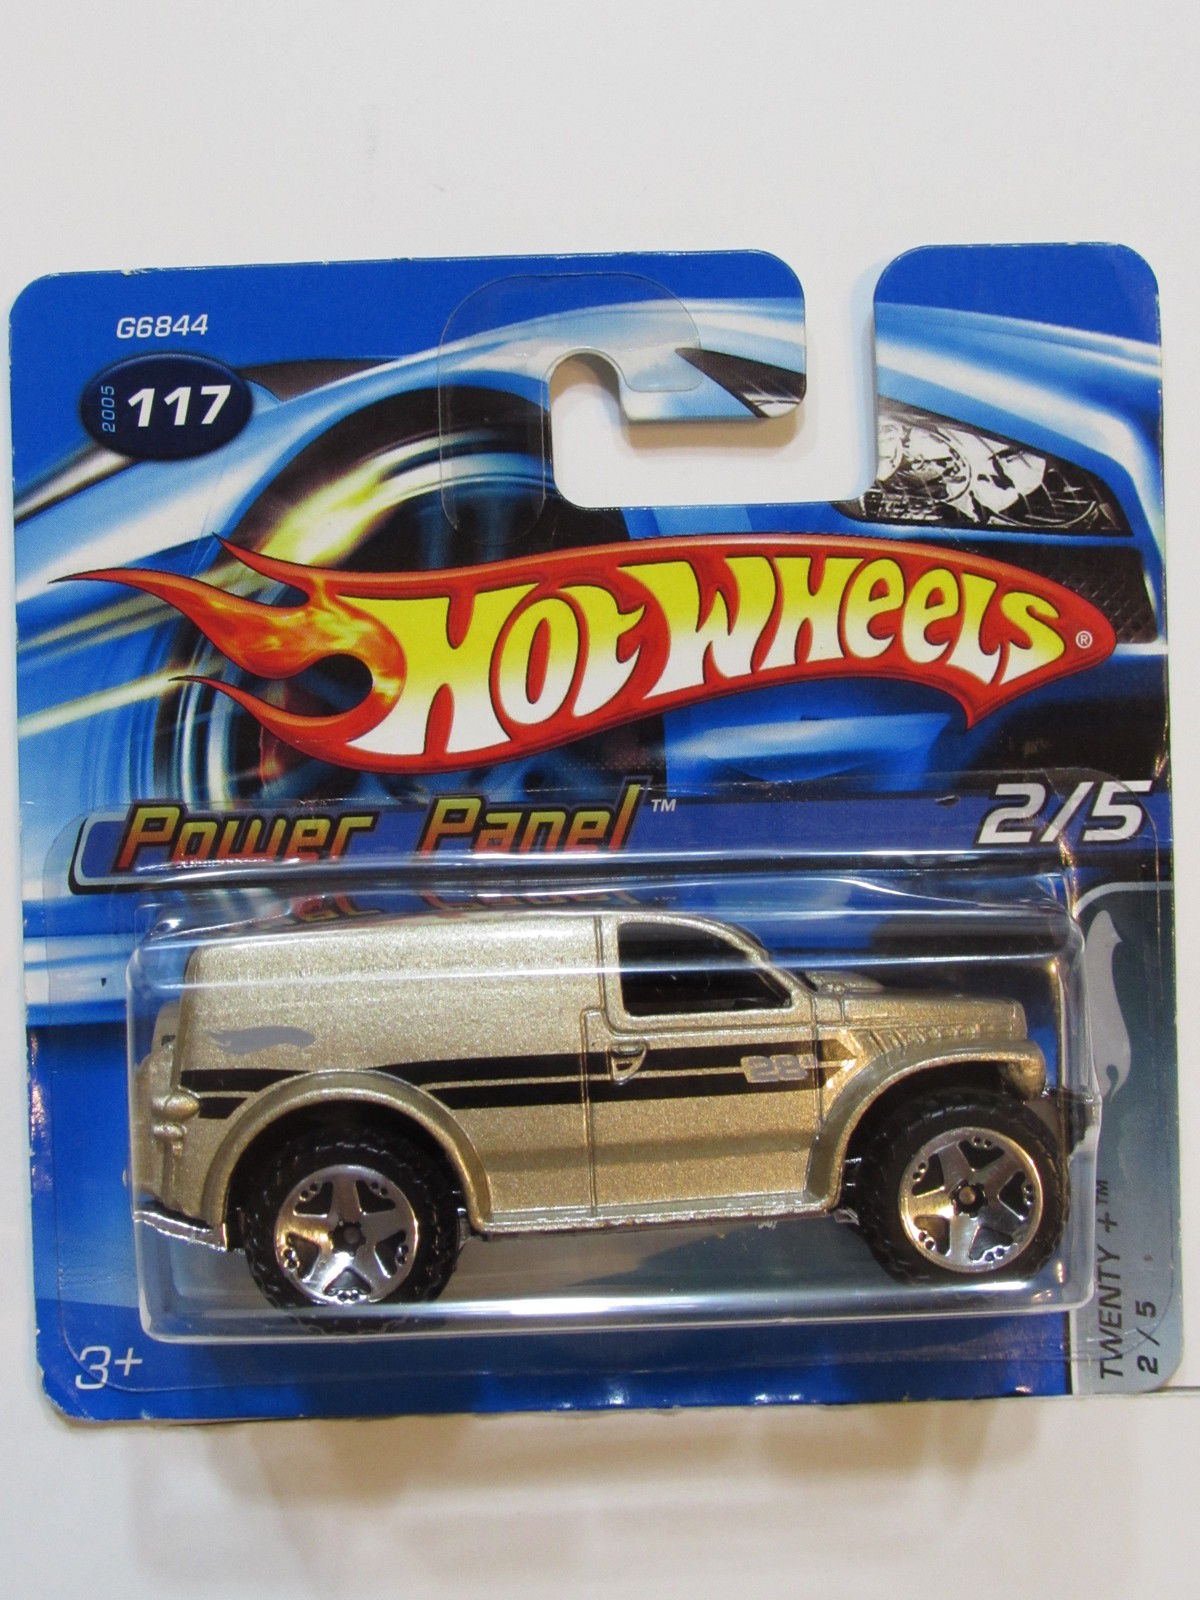 HOT WHEELS 2005 POWER PANEL 2/5 TWENTY #117 SHORT CARD